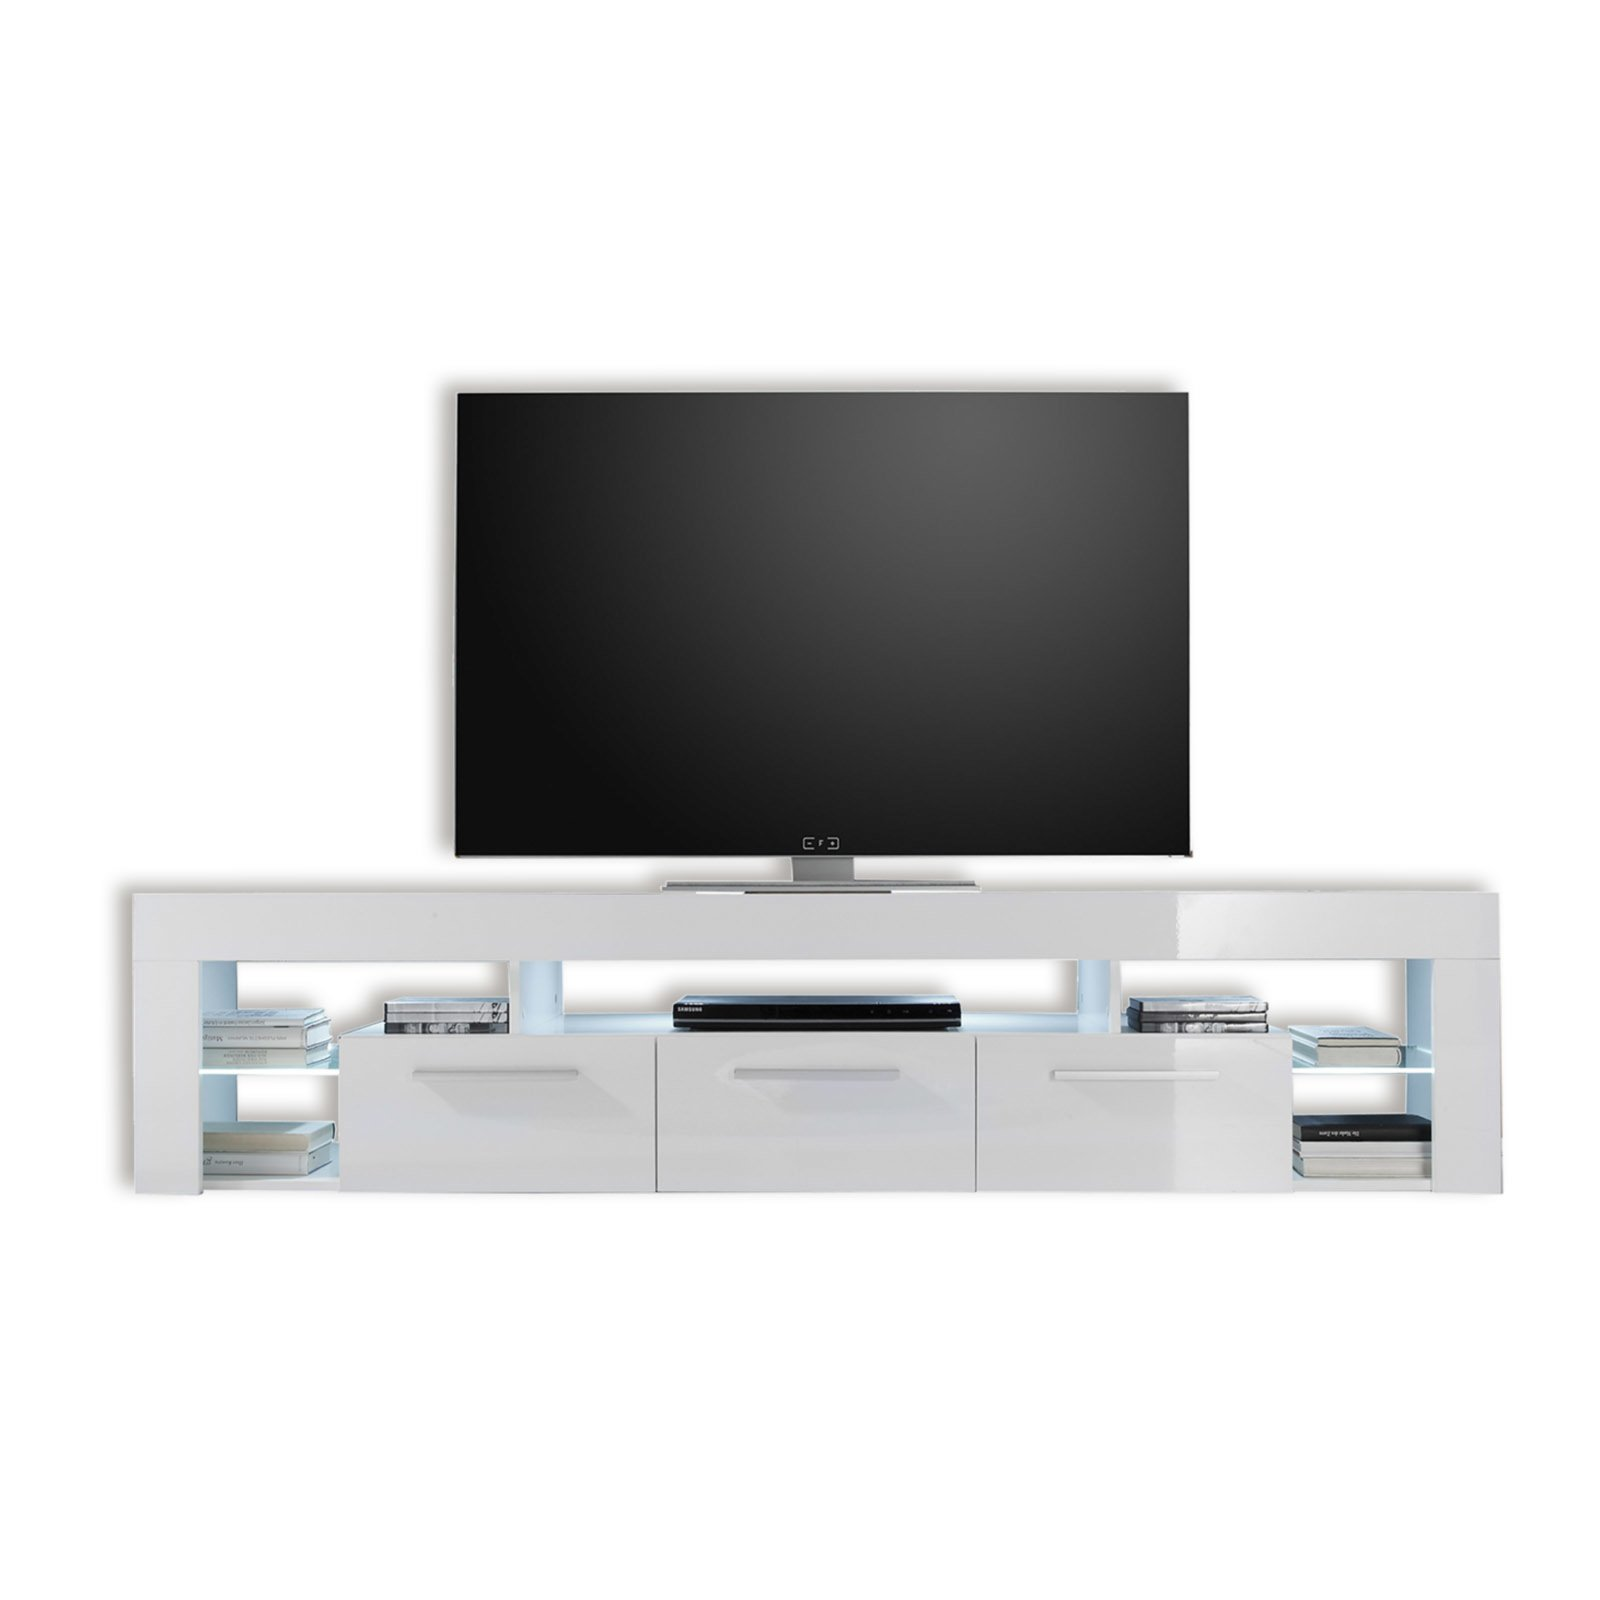 Langes Lowboard Langes Lowboard Langes Lowboard With Langes Lowboard Finest Tv